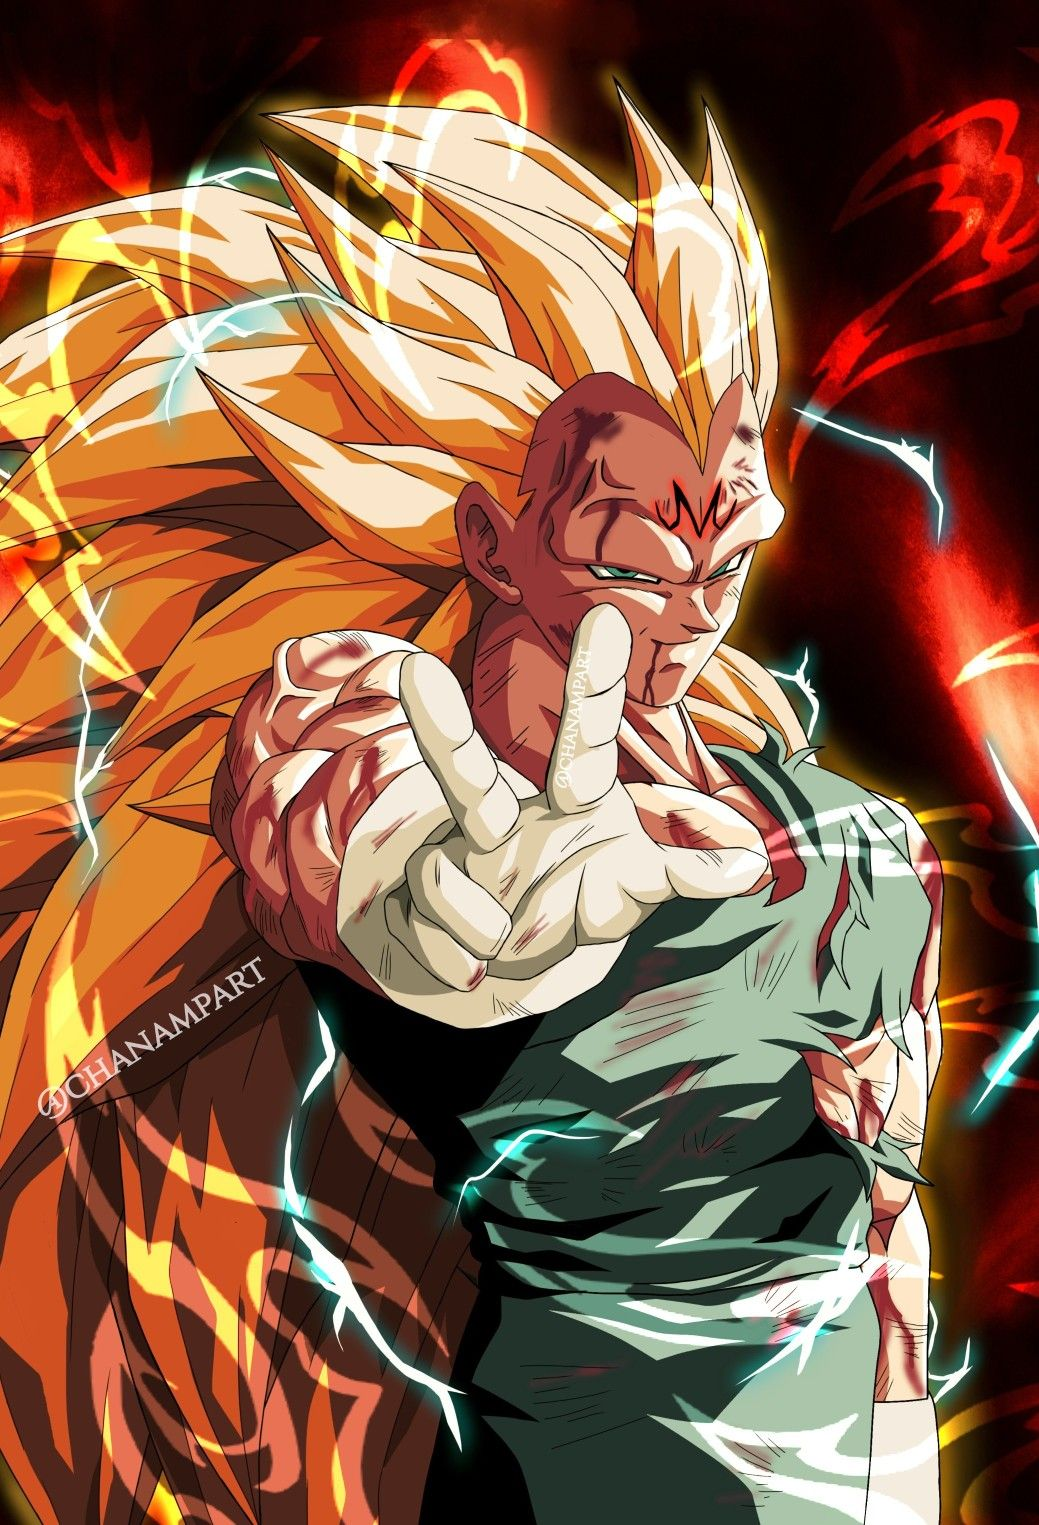 Majin Vegeta Ssj 3 By Chanampart In 2020 Dragon Ball Super Manga Anime Dragon Ball Super Dragon Ball Painting